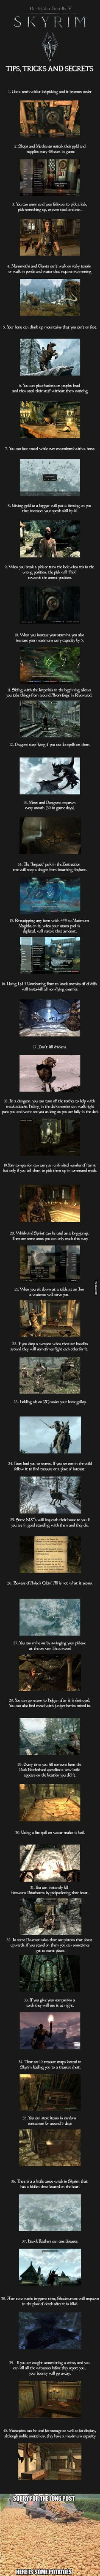 Skyrim Tips